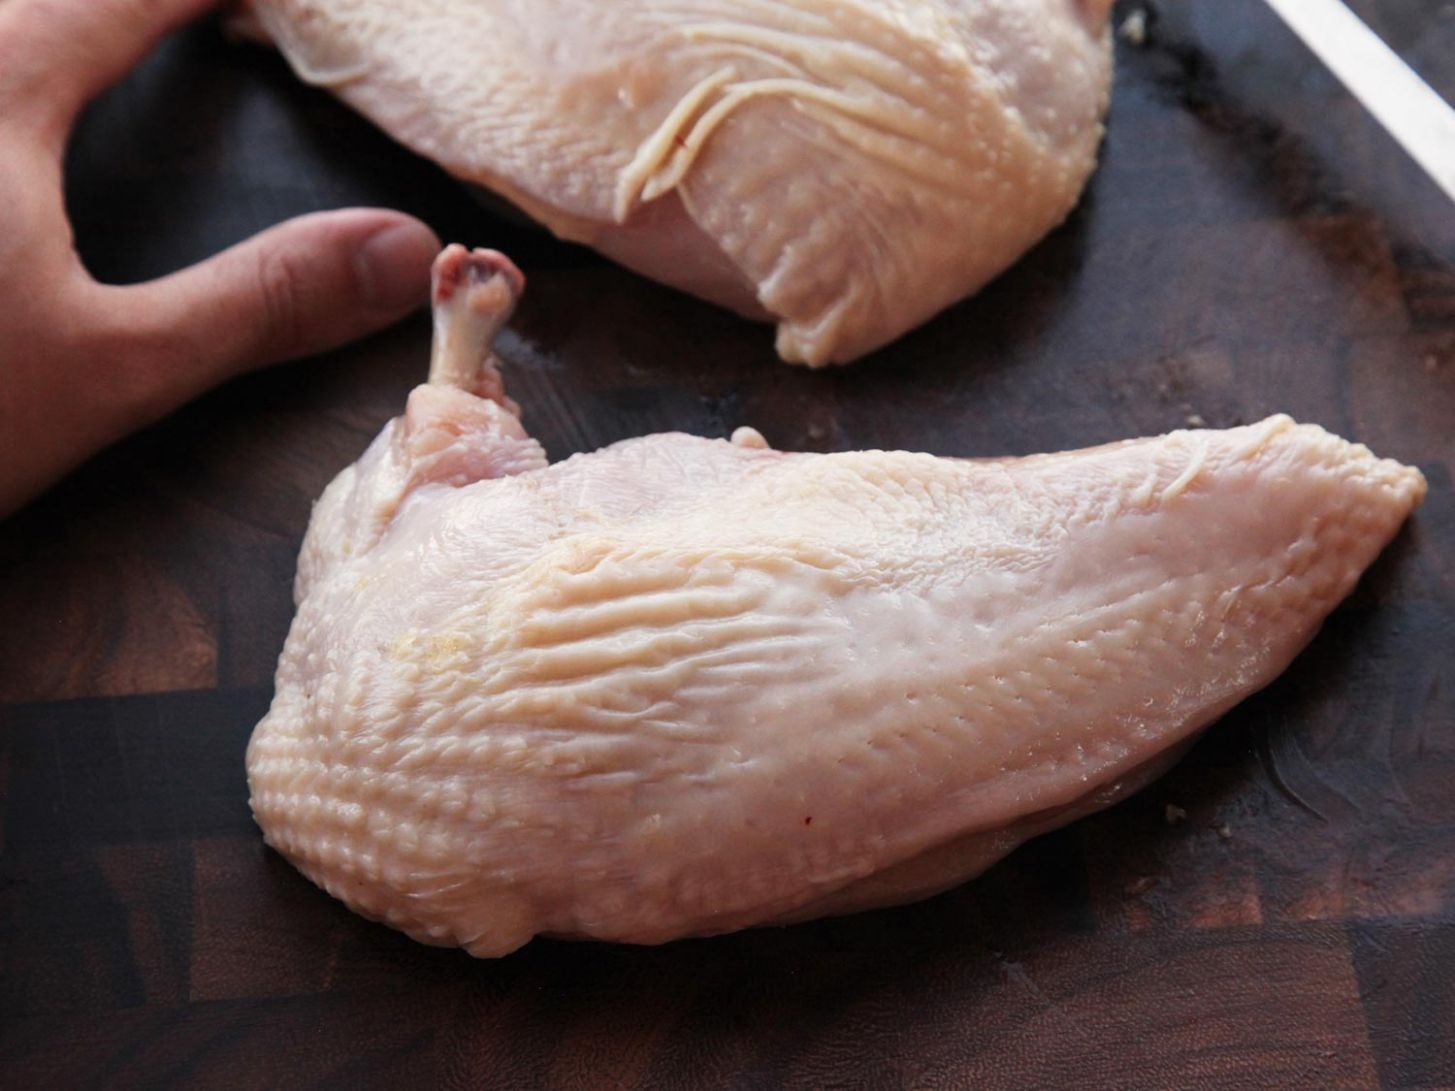 How to Cut an Airline Chicken Breast | Knife Skills | Serious Eats